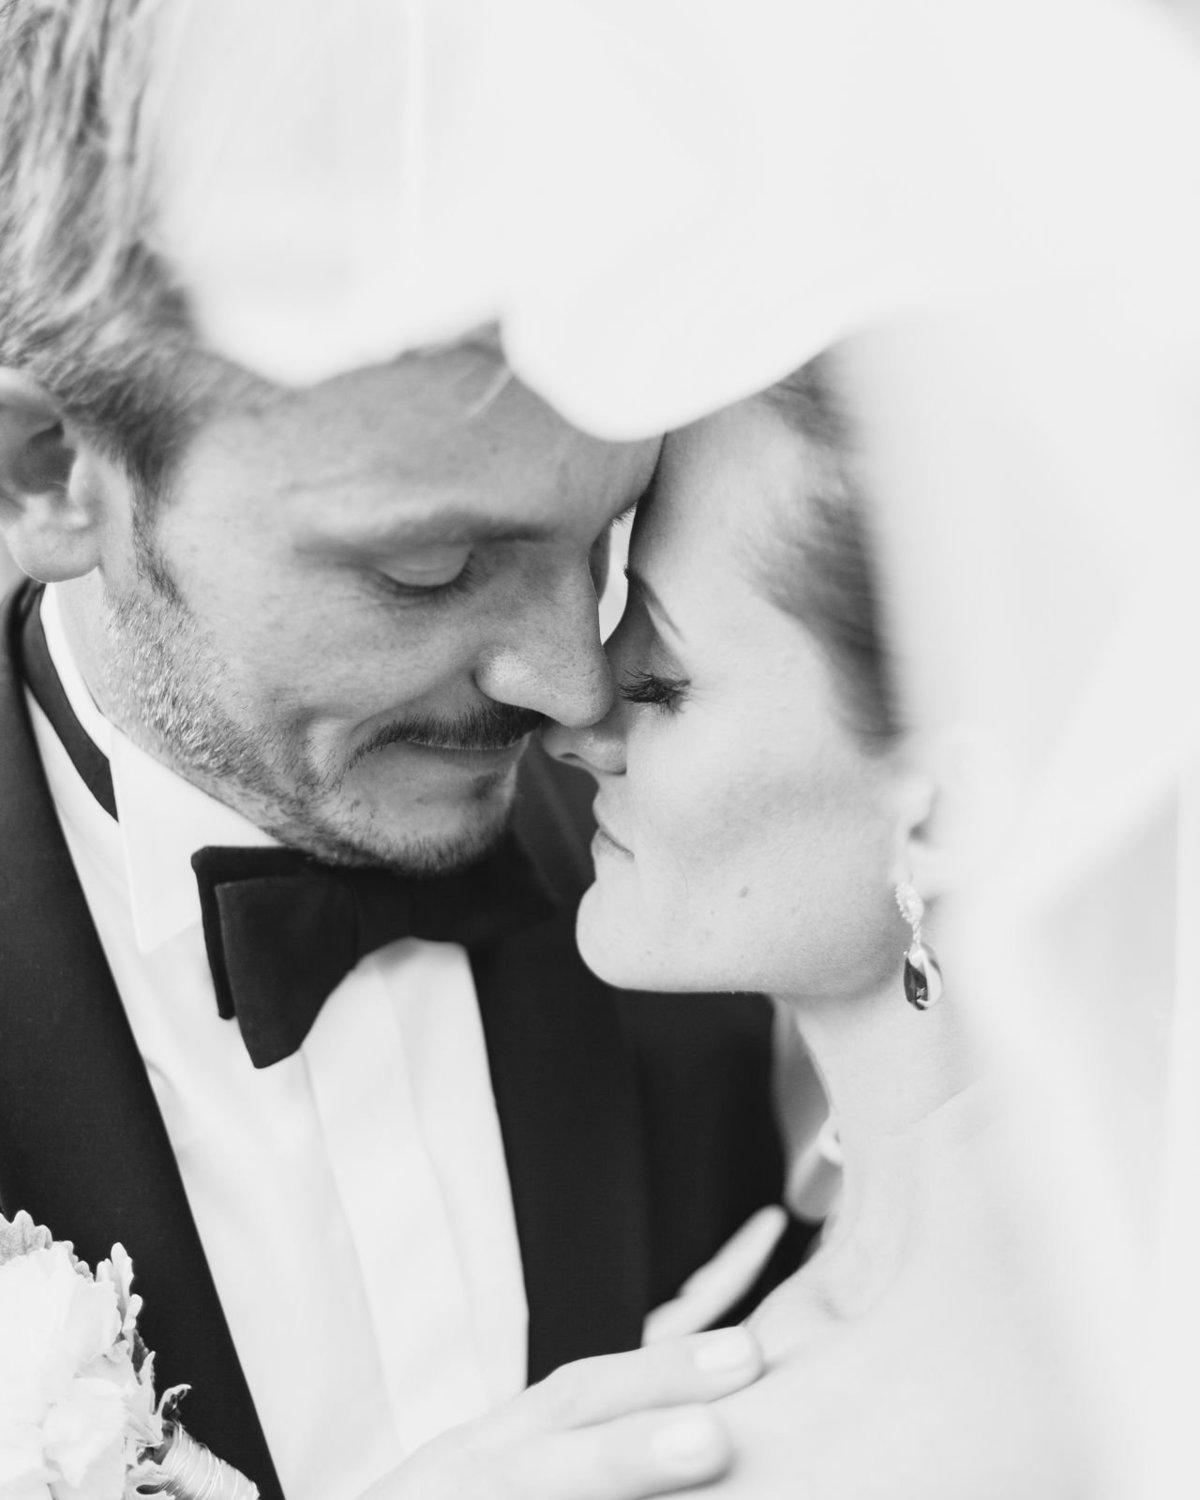 Destination Wedding - Black Forest, Germany - Heidi + Sebastian